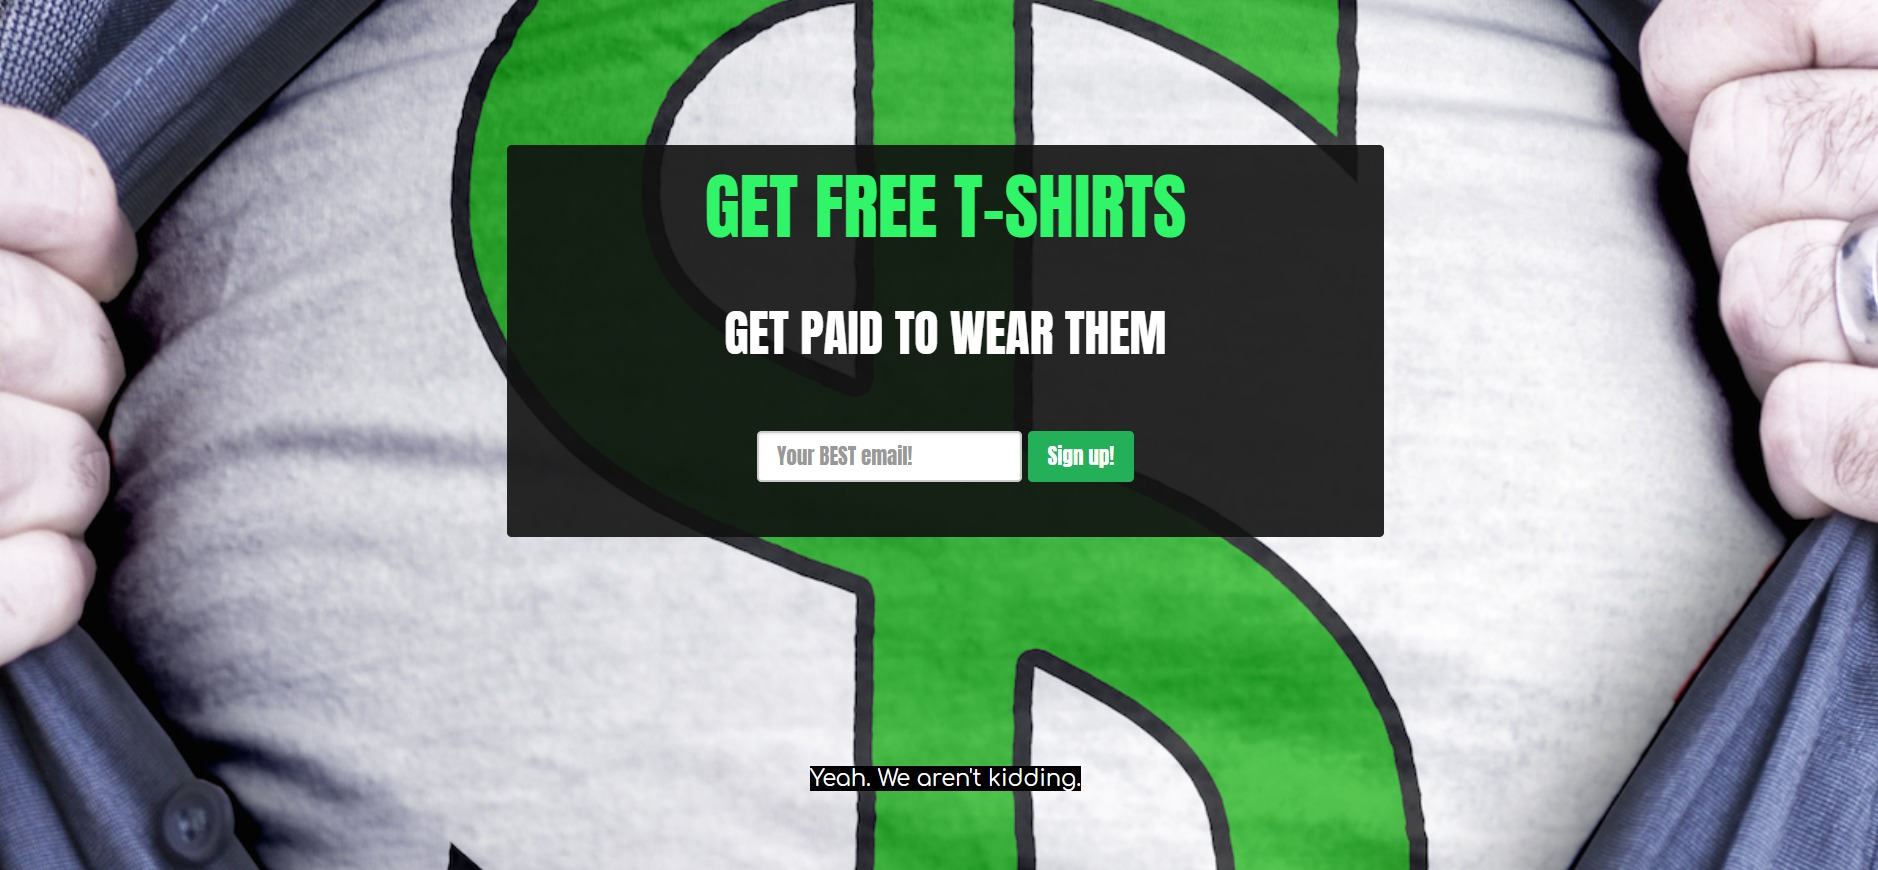 Teespay Review: Get Paid $10 to Wear a Free Teeshirt